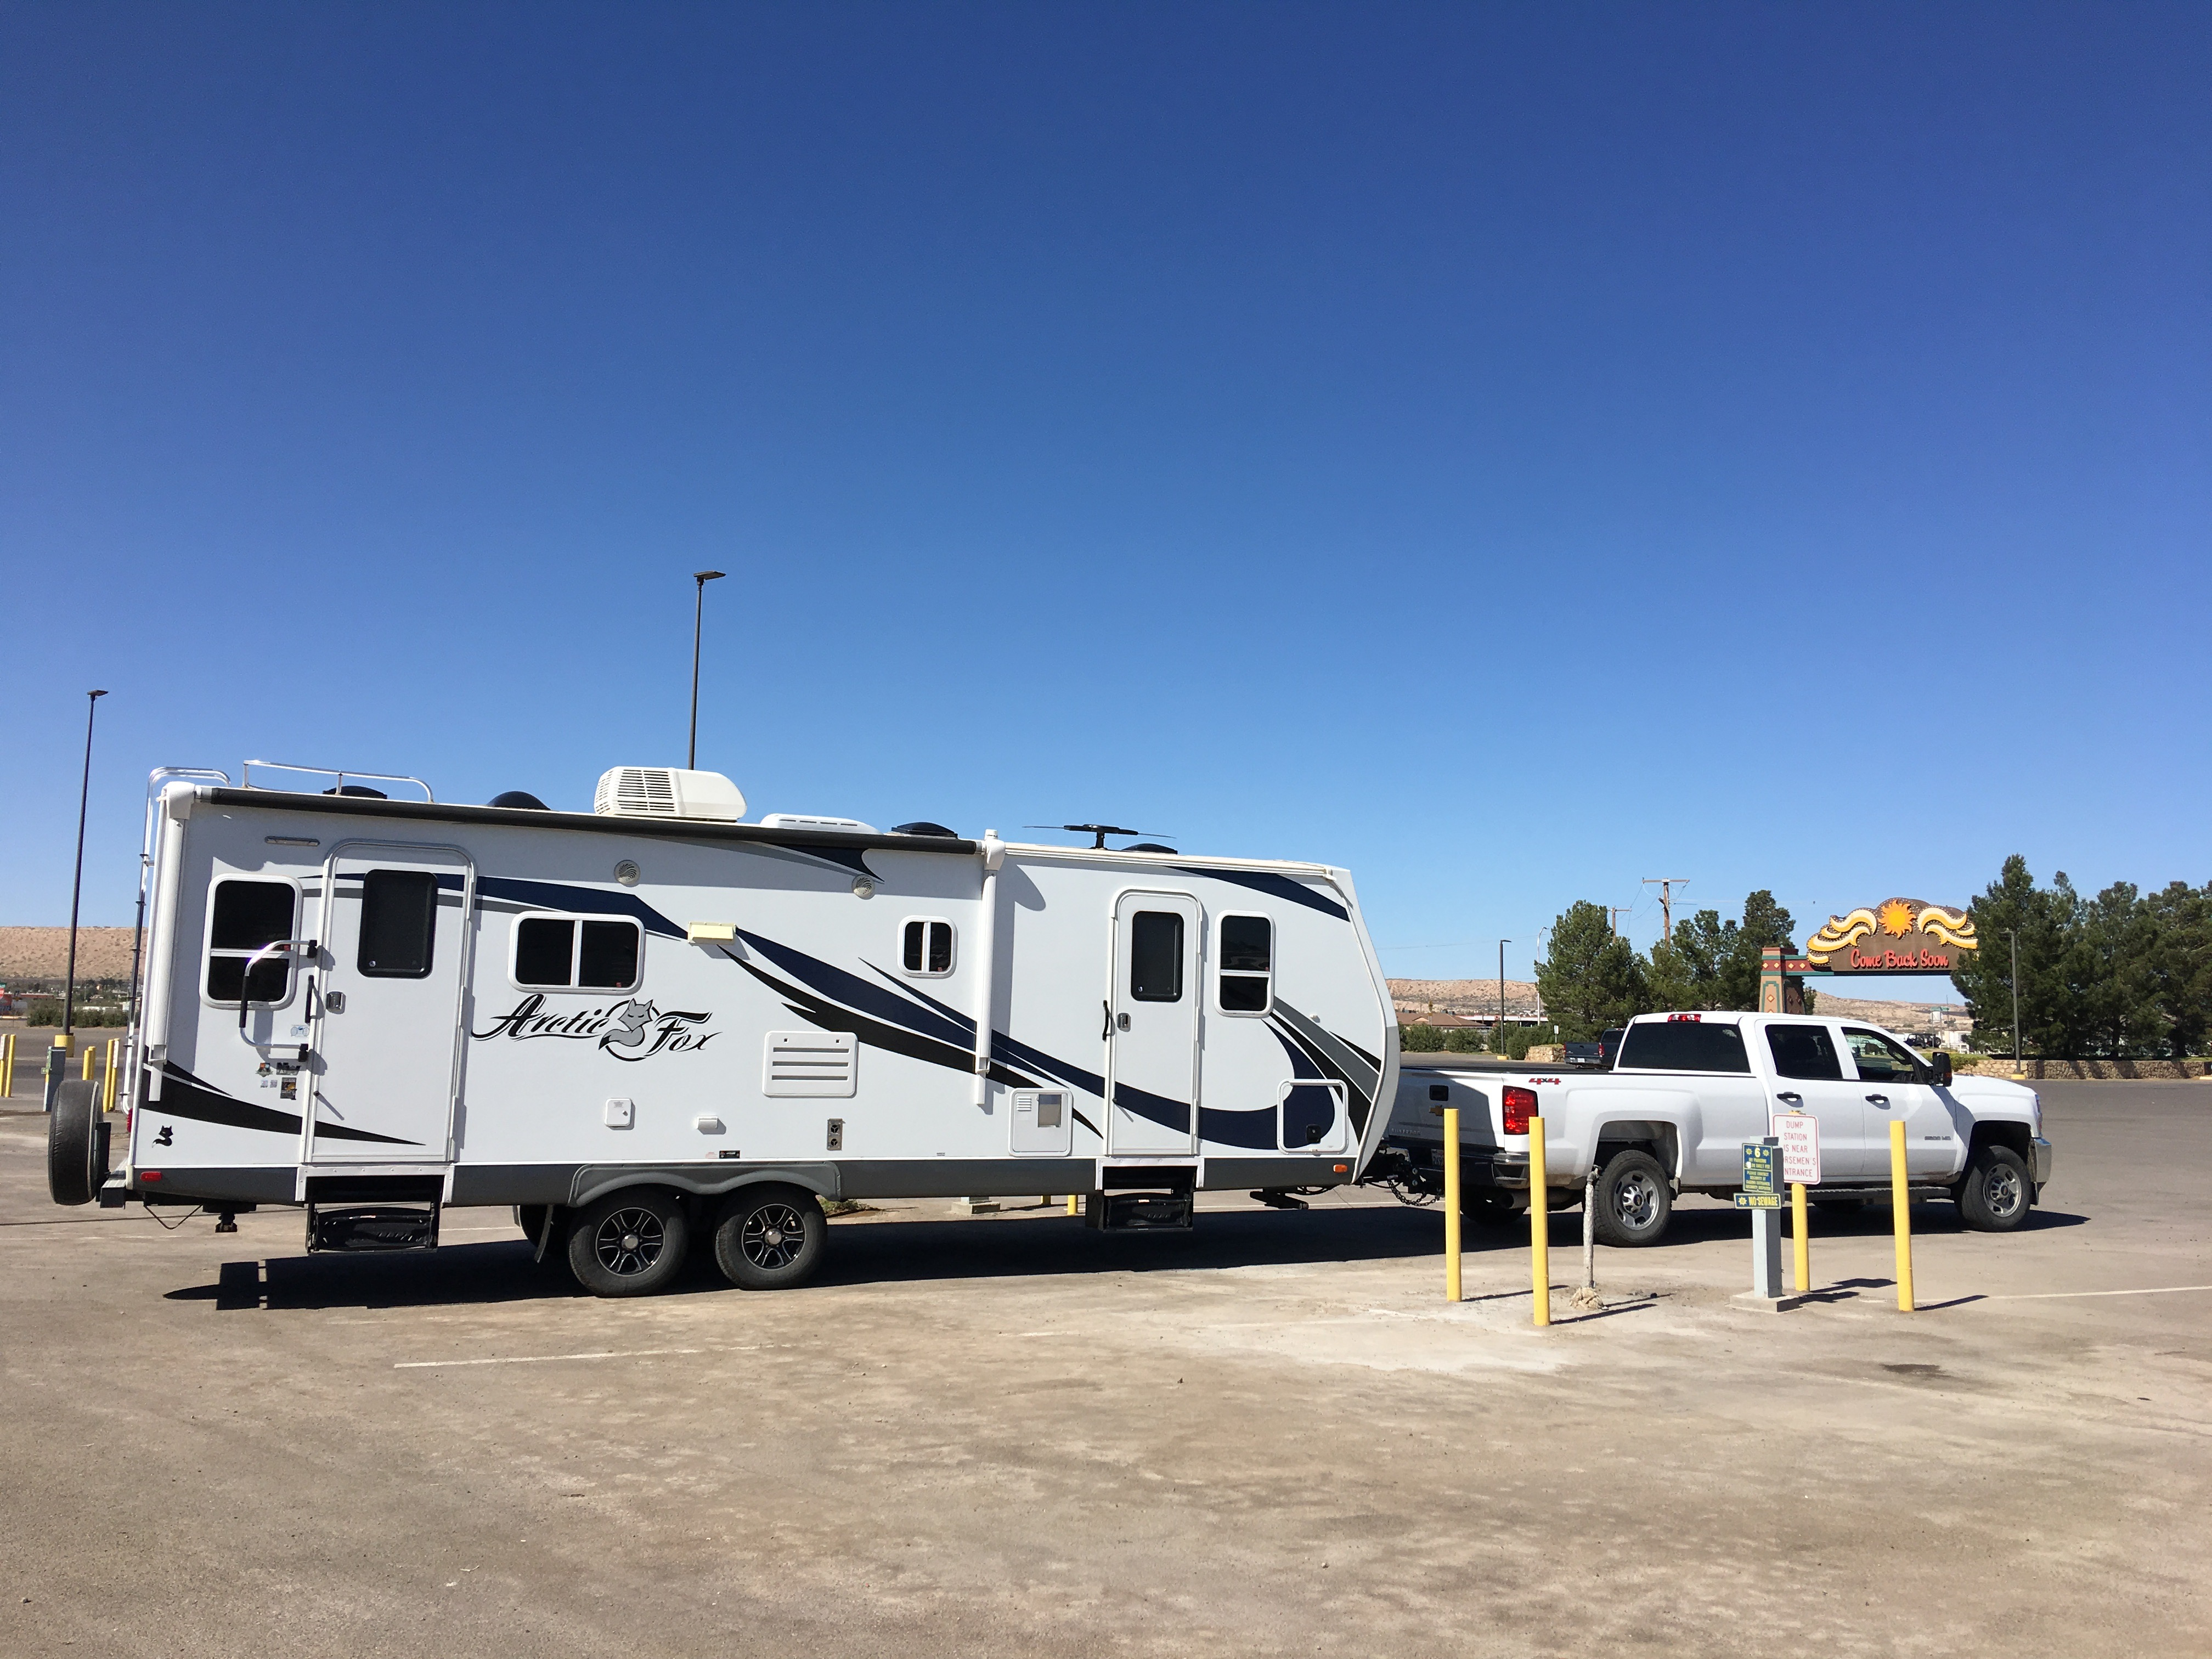 Our truck and travel trailer parked in an RV site at the Sunland Park Racetrack and Casino